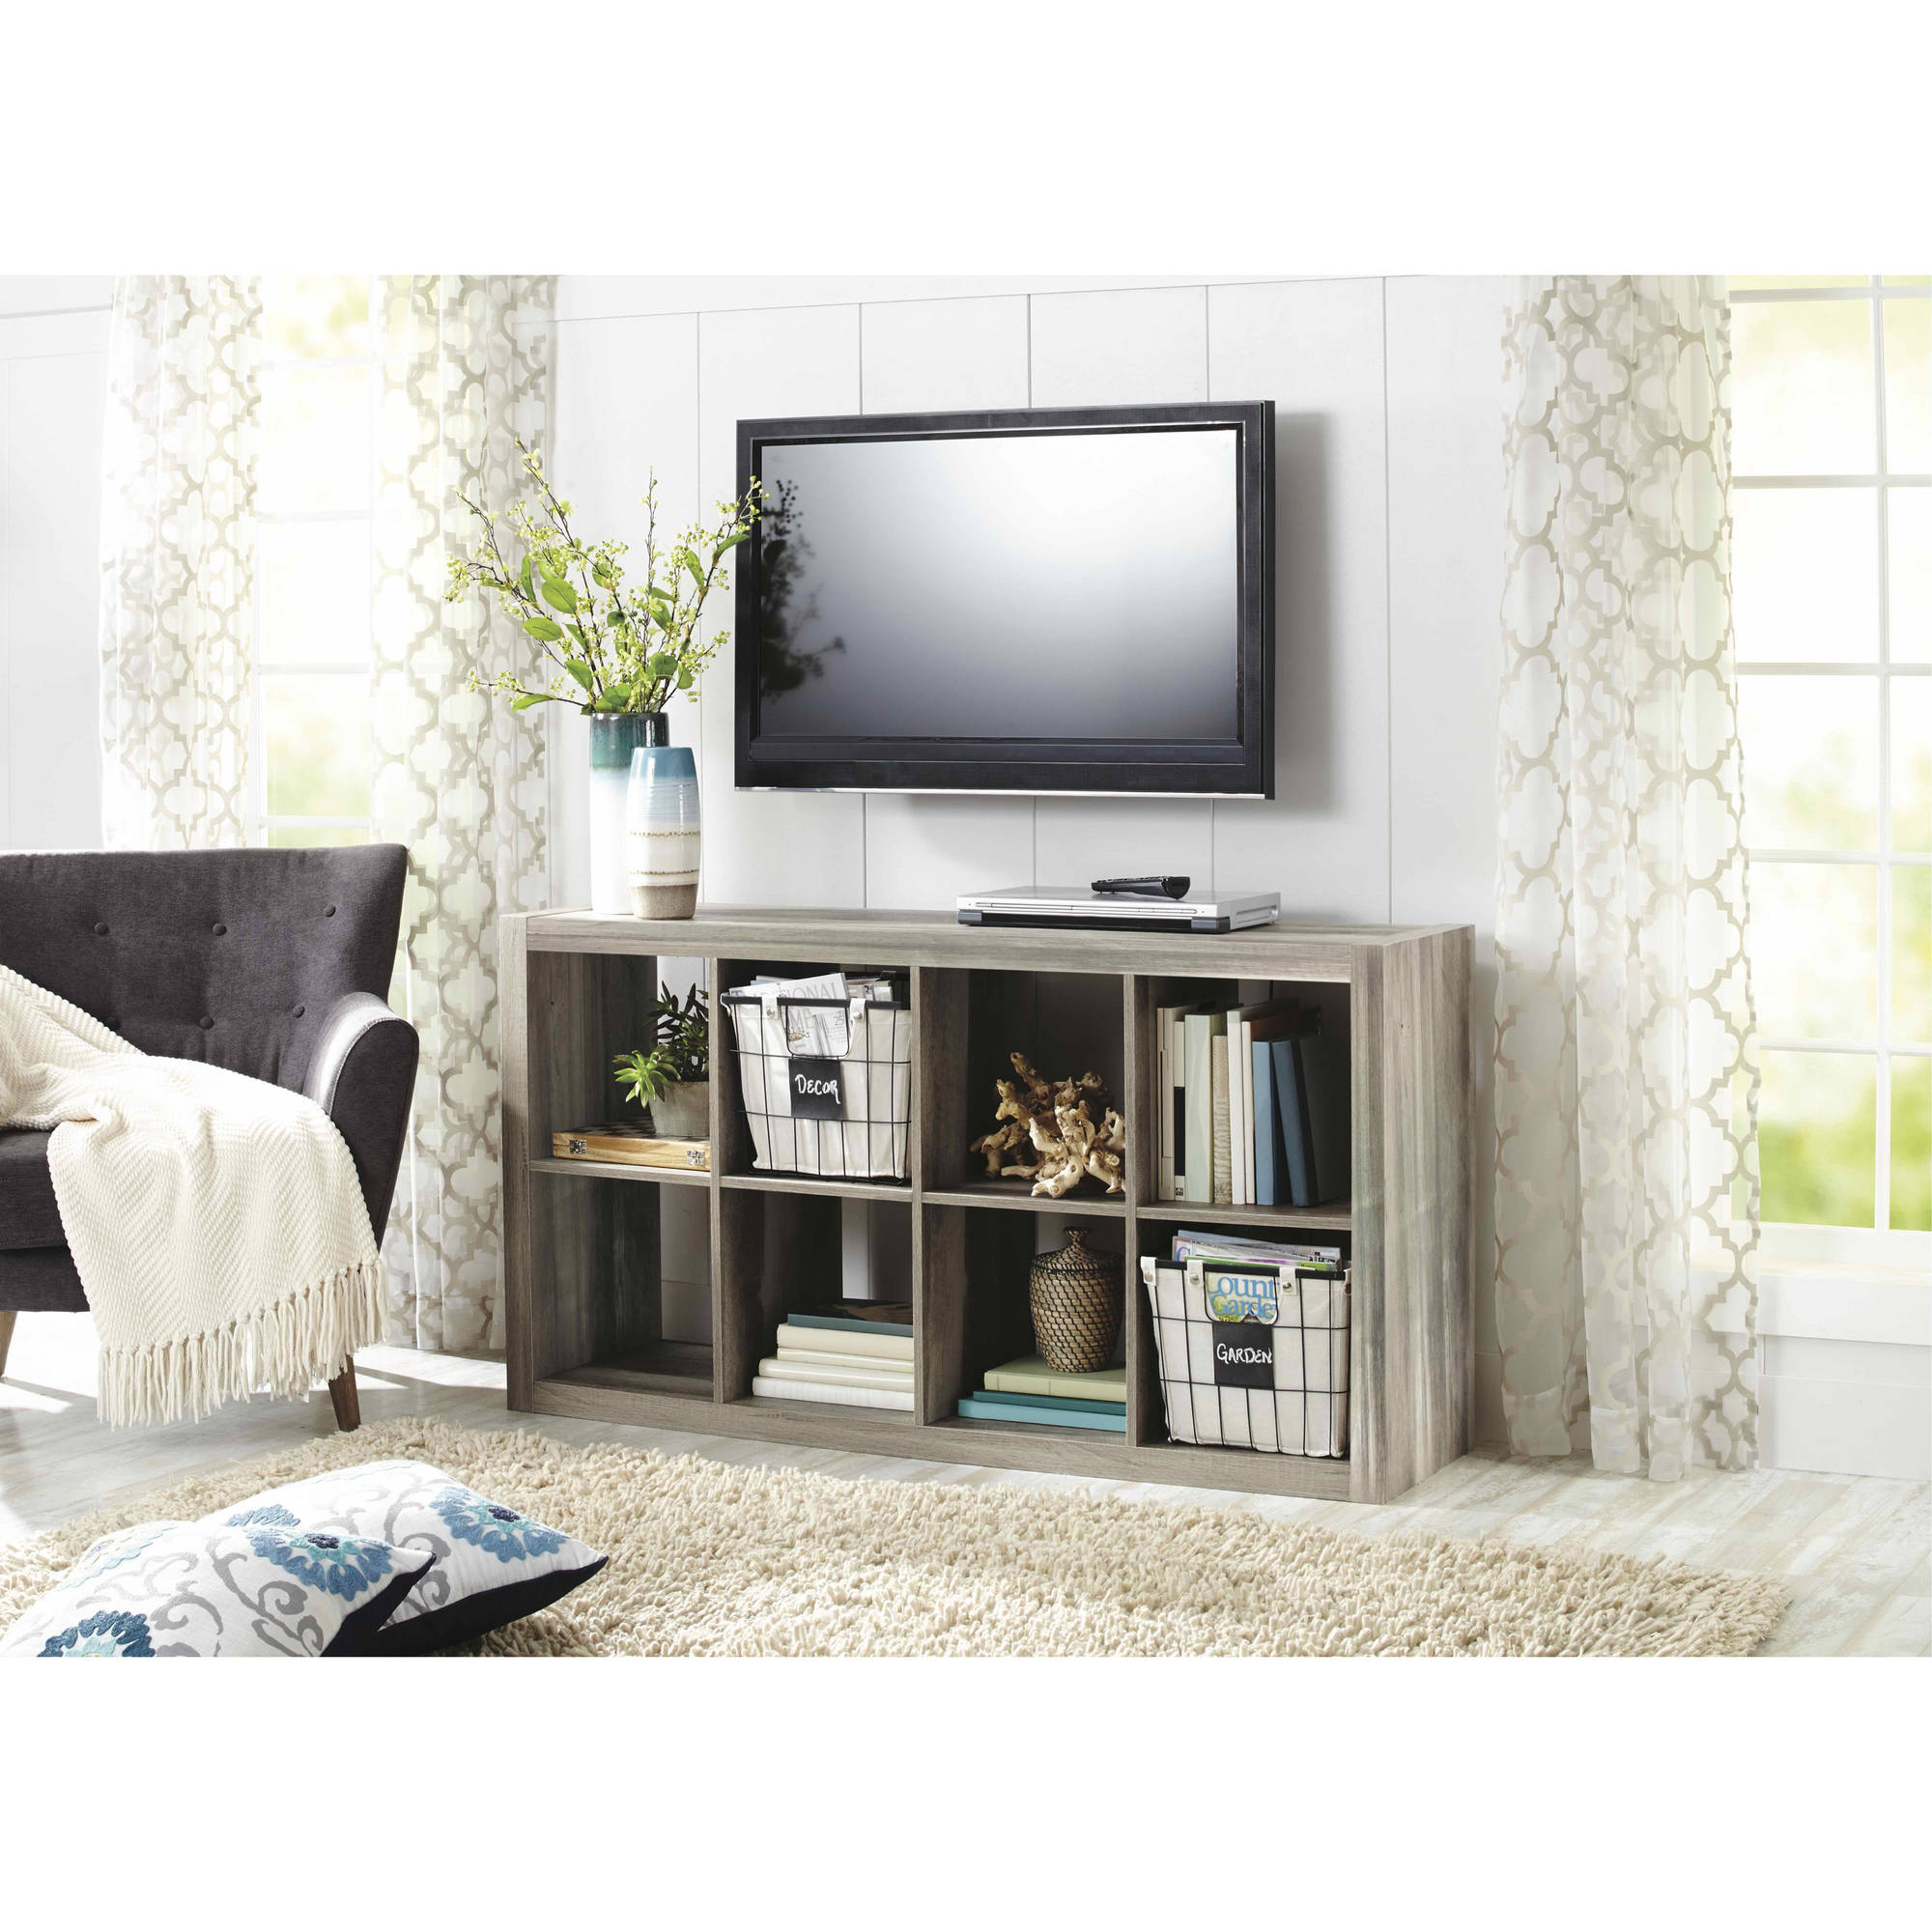 Details About 8 Cube Storage Organizer Shelf Tv Stand Bookcase Dorm Furniture Rustic Gray Wood